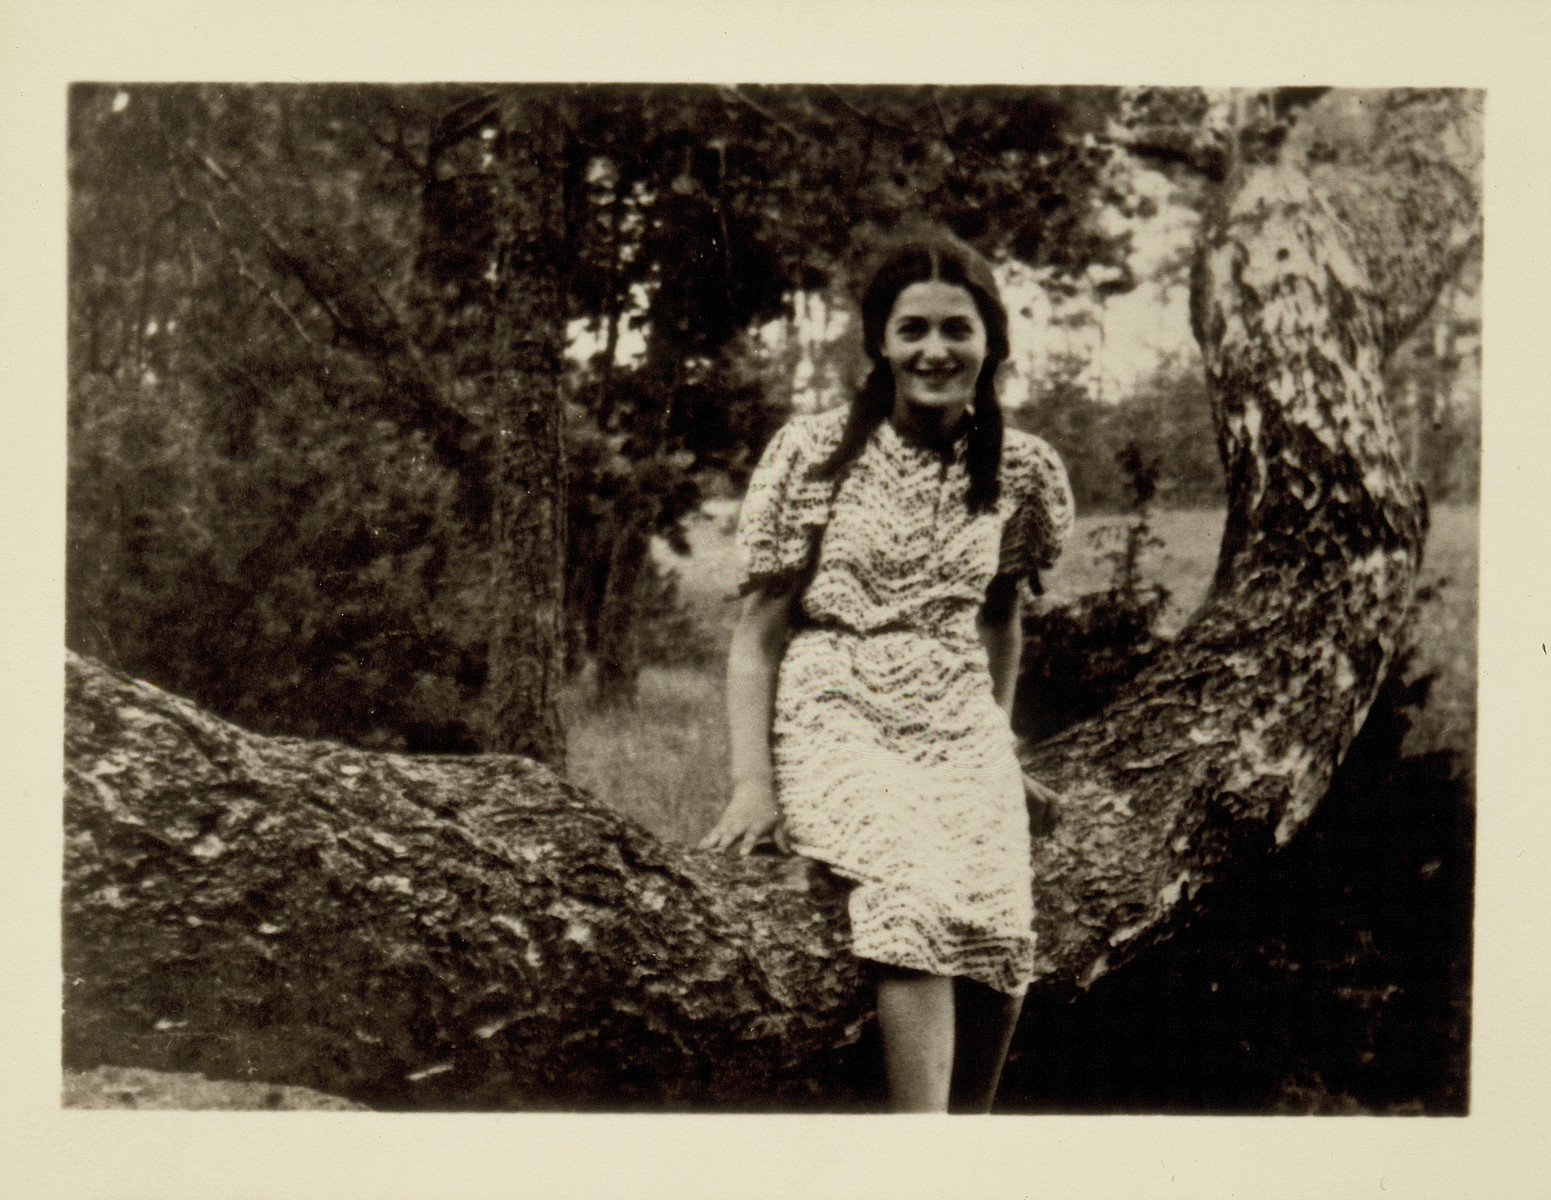 A Jewish teenage girl poses sitting on the branch of a tree in the Seklutski Forest near Eisiskes.  Pictured is Sarah Bastunski, the daughter of Shmuel and Rivka Bastunski.  Sarah was killed by the Germans during the September 1941 mass shooting action in Eisiskes.